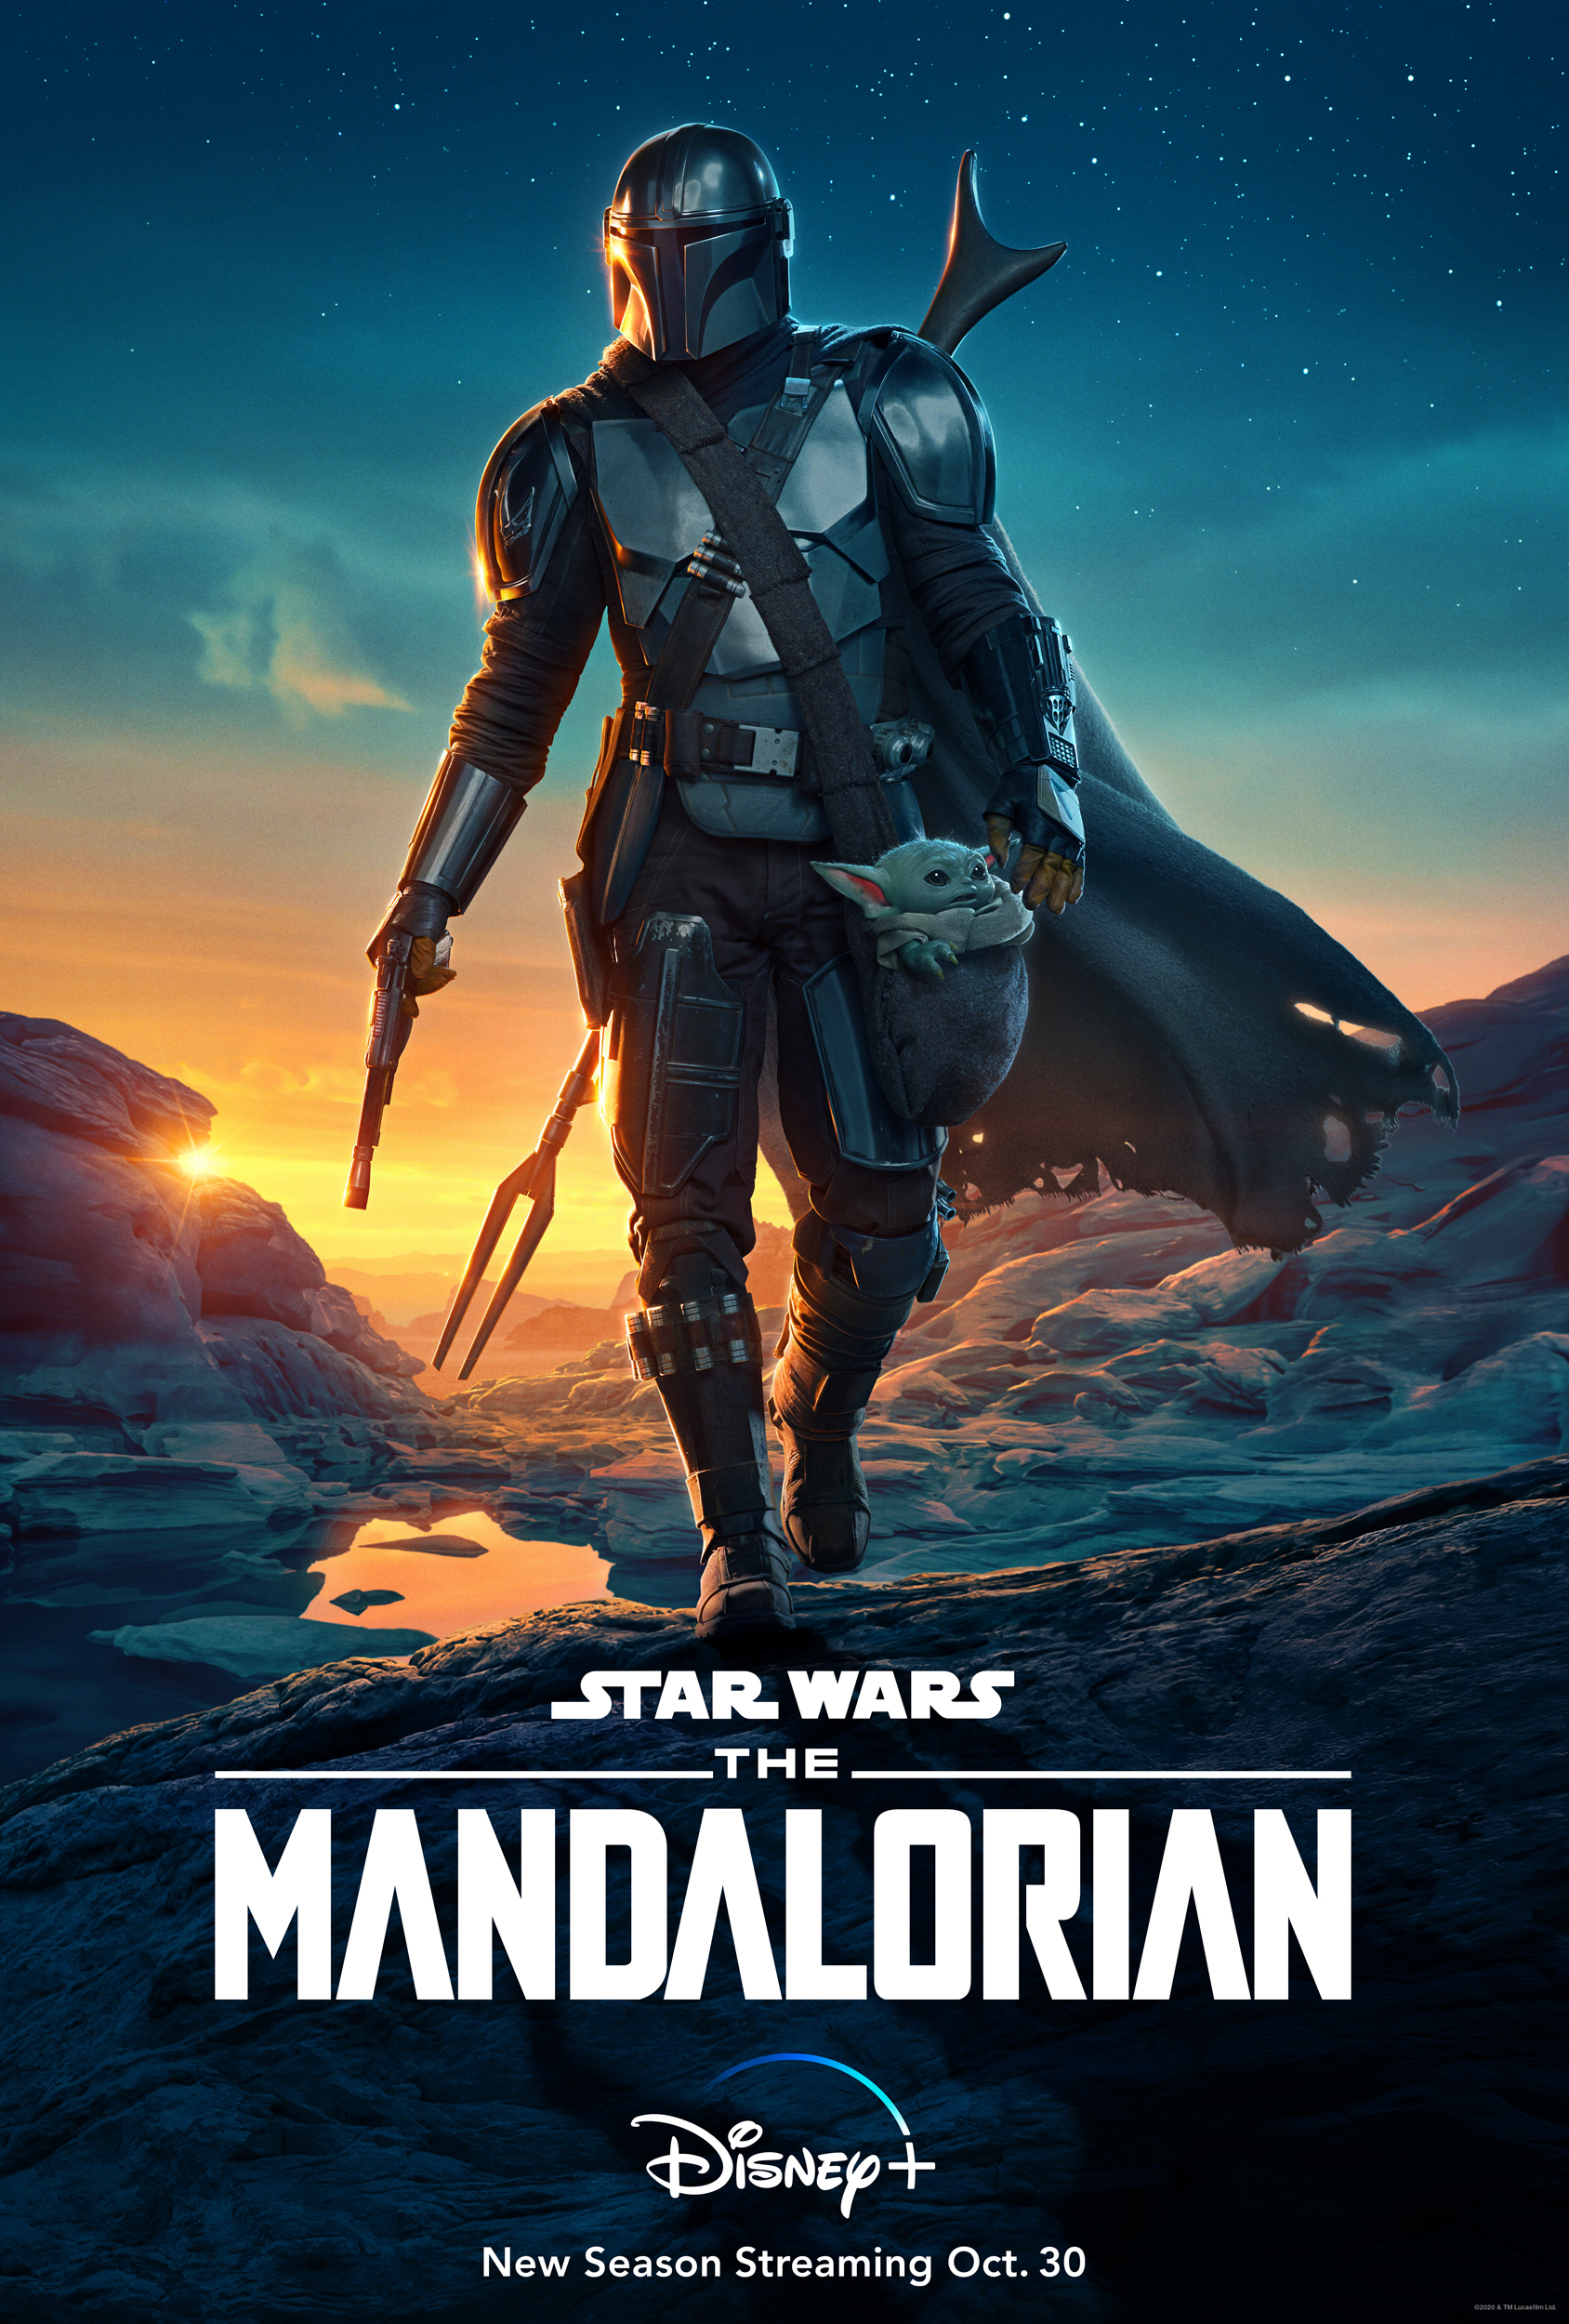 Star Wars Series The Mandalorian Fans Noted the 2021 Emmys Used Major Spoiler in Best Drama Awards Video!